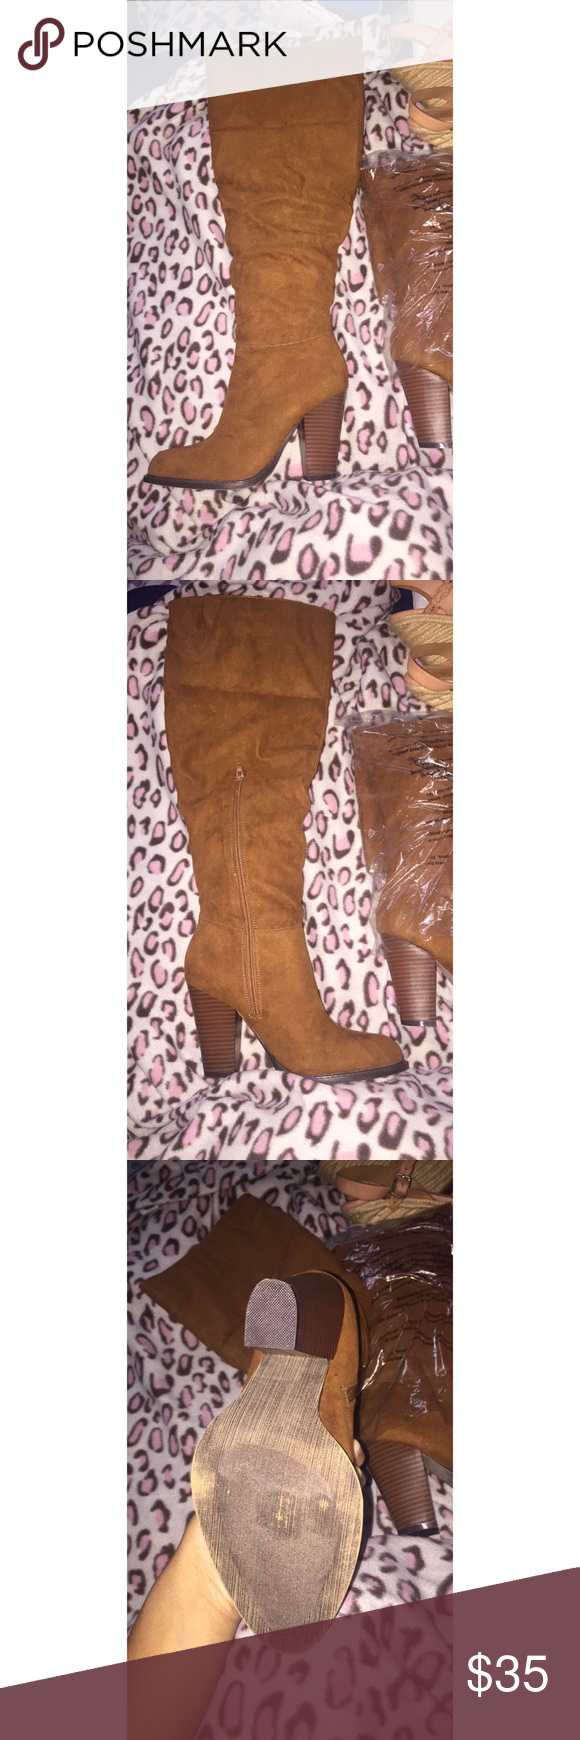 High Heeled Boots Brown High Heeled/Over the Knee Boots JustFab Shoes Over the Knee Boots